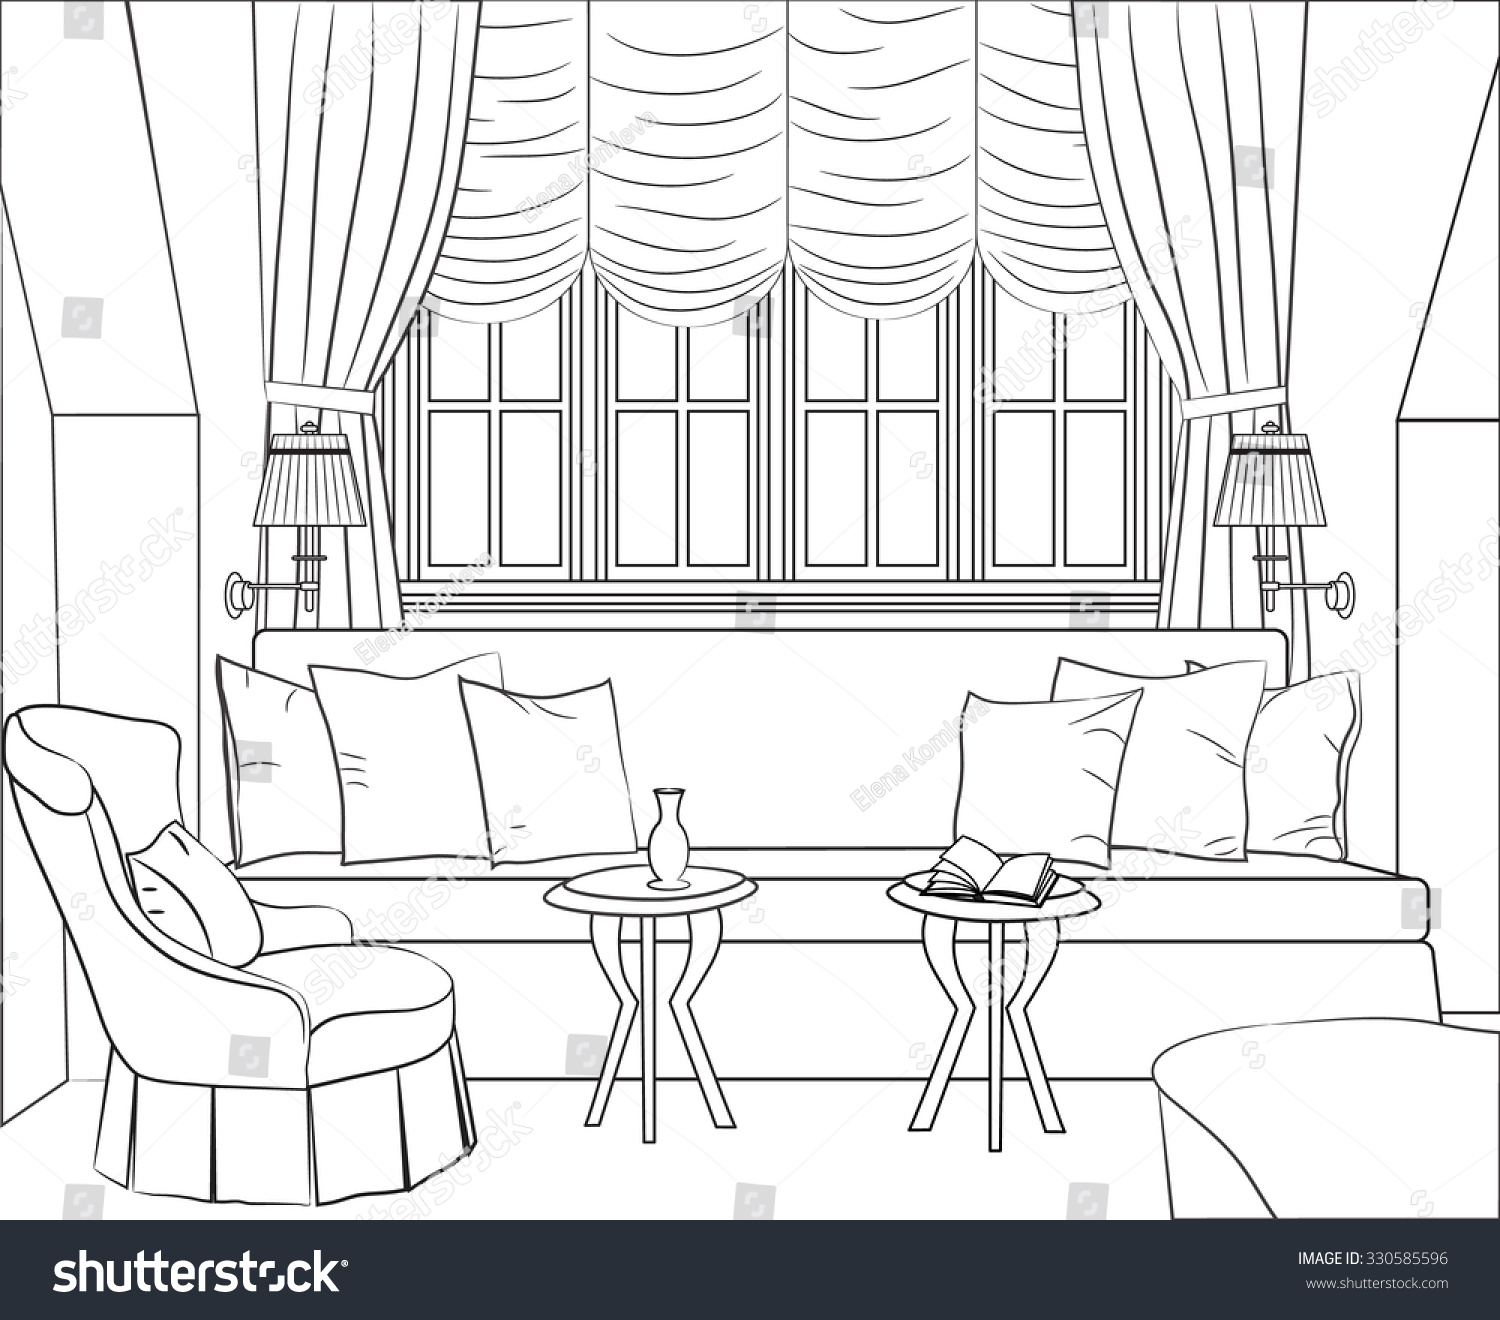 Outline drawing interior room window sofa stock vector for Living room outline